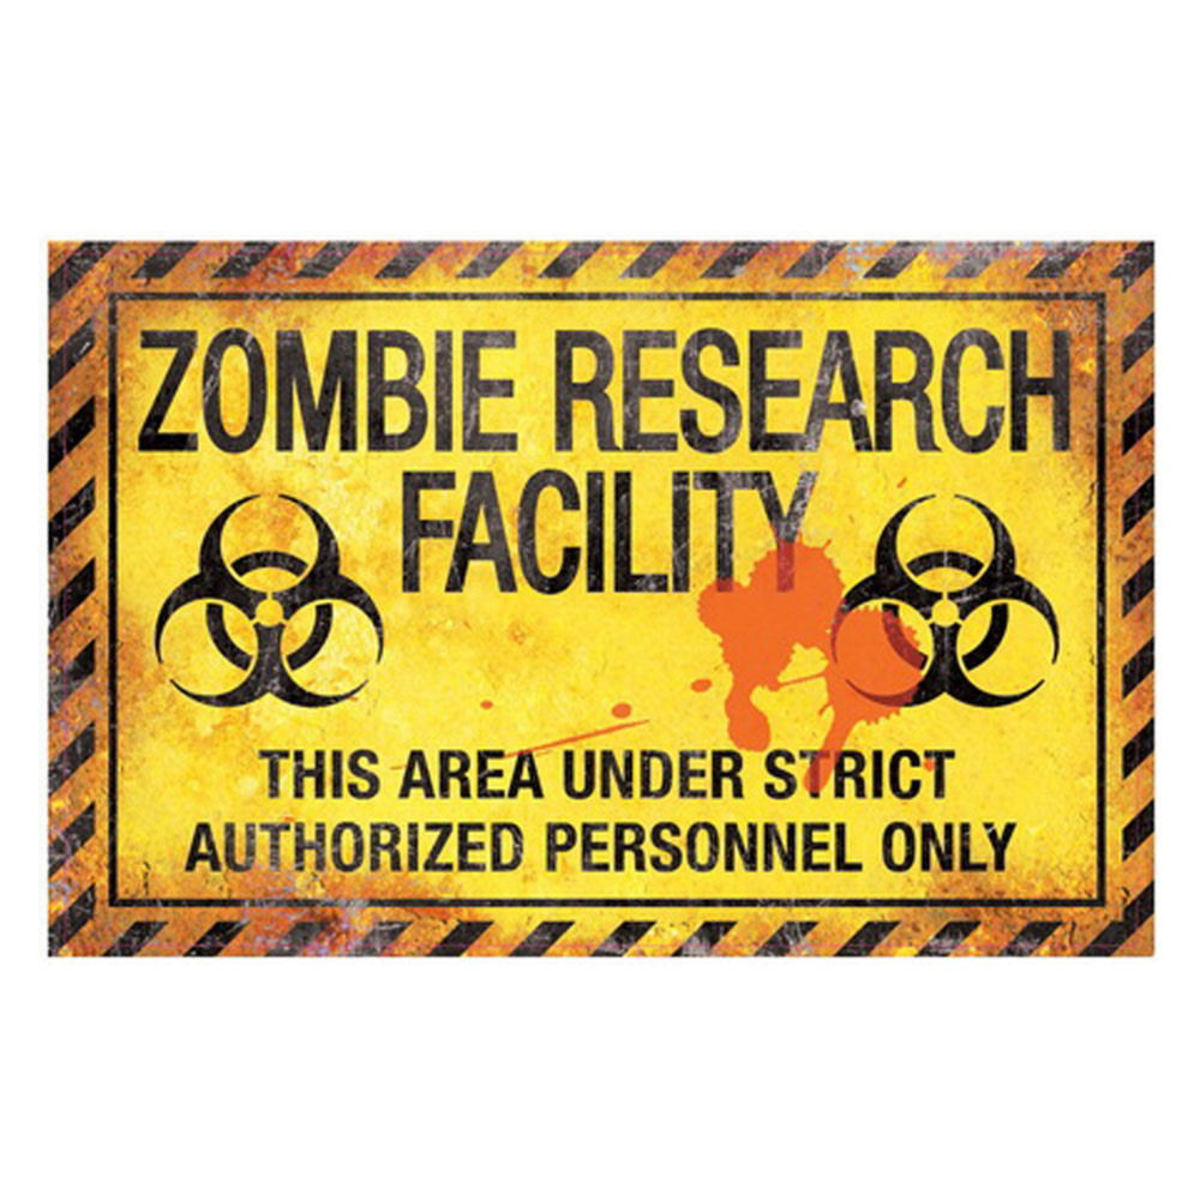 cedule Zombie Research Facility - D2677G6